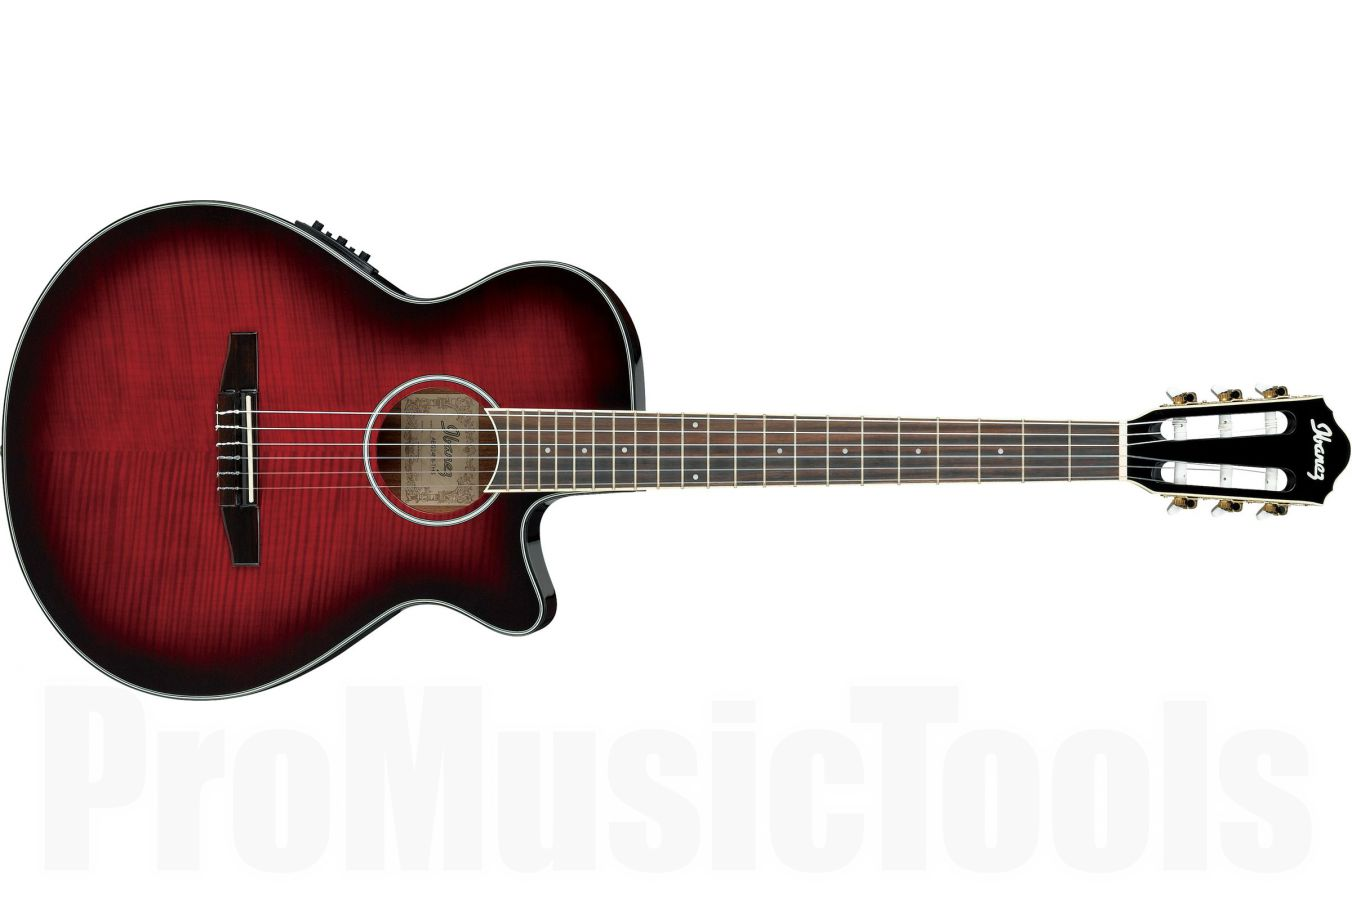 Ibanez AEG24NII THS - Transparent Hibiscus Red Sunburst - demo